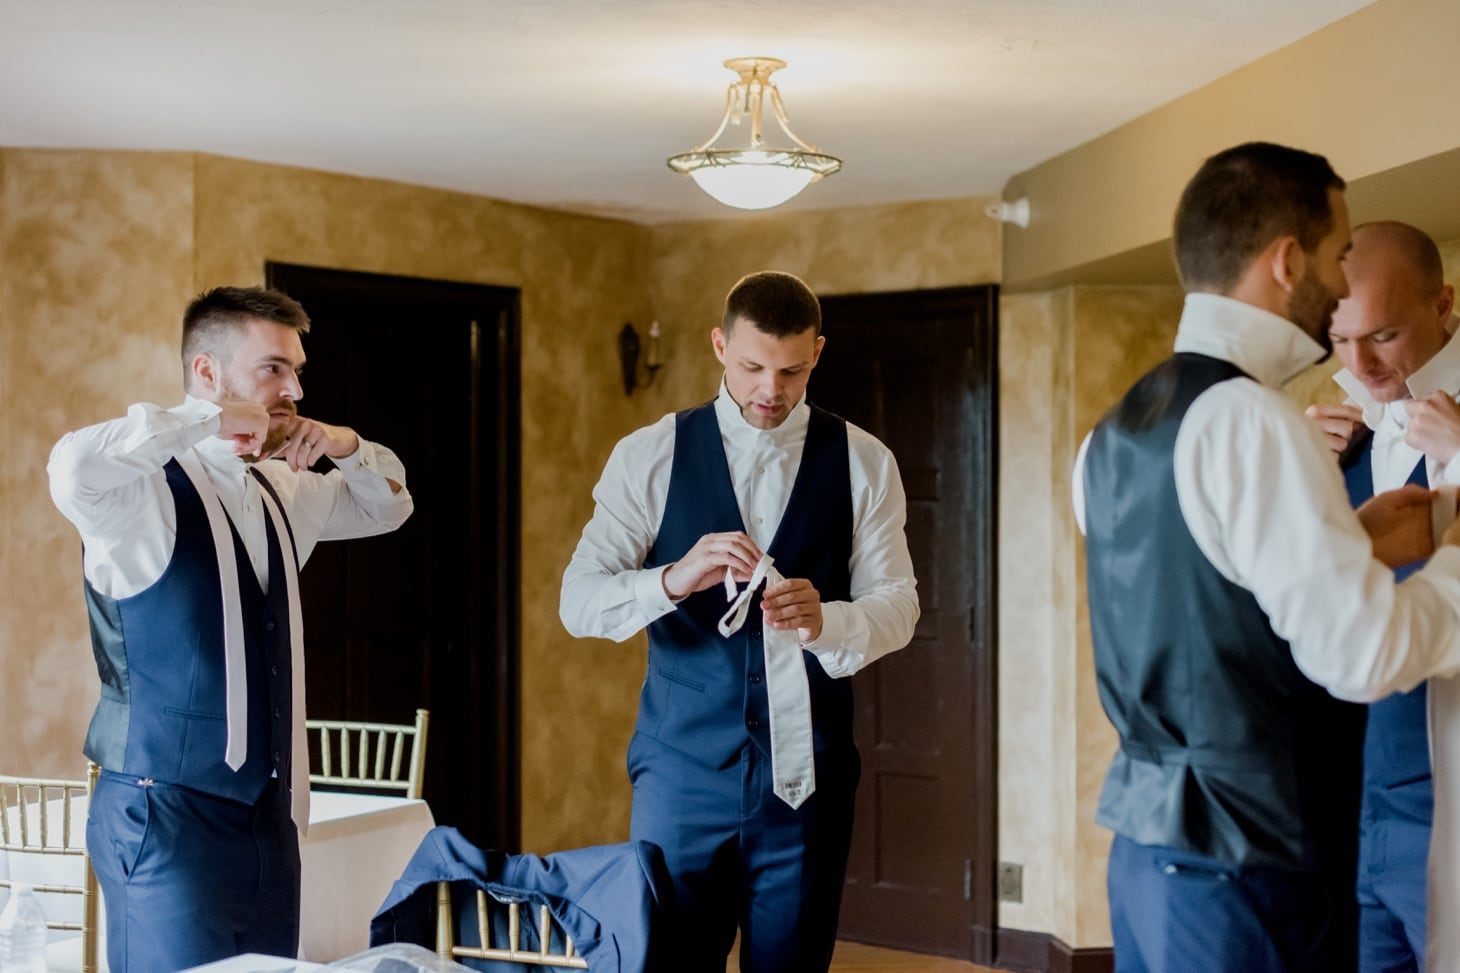 groom getting ready photos rollions mansion des moines